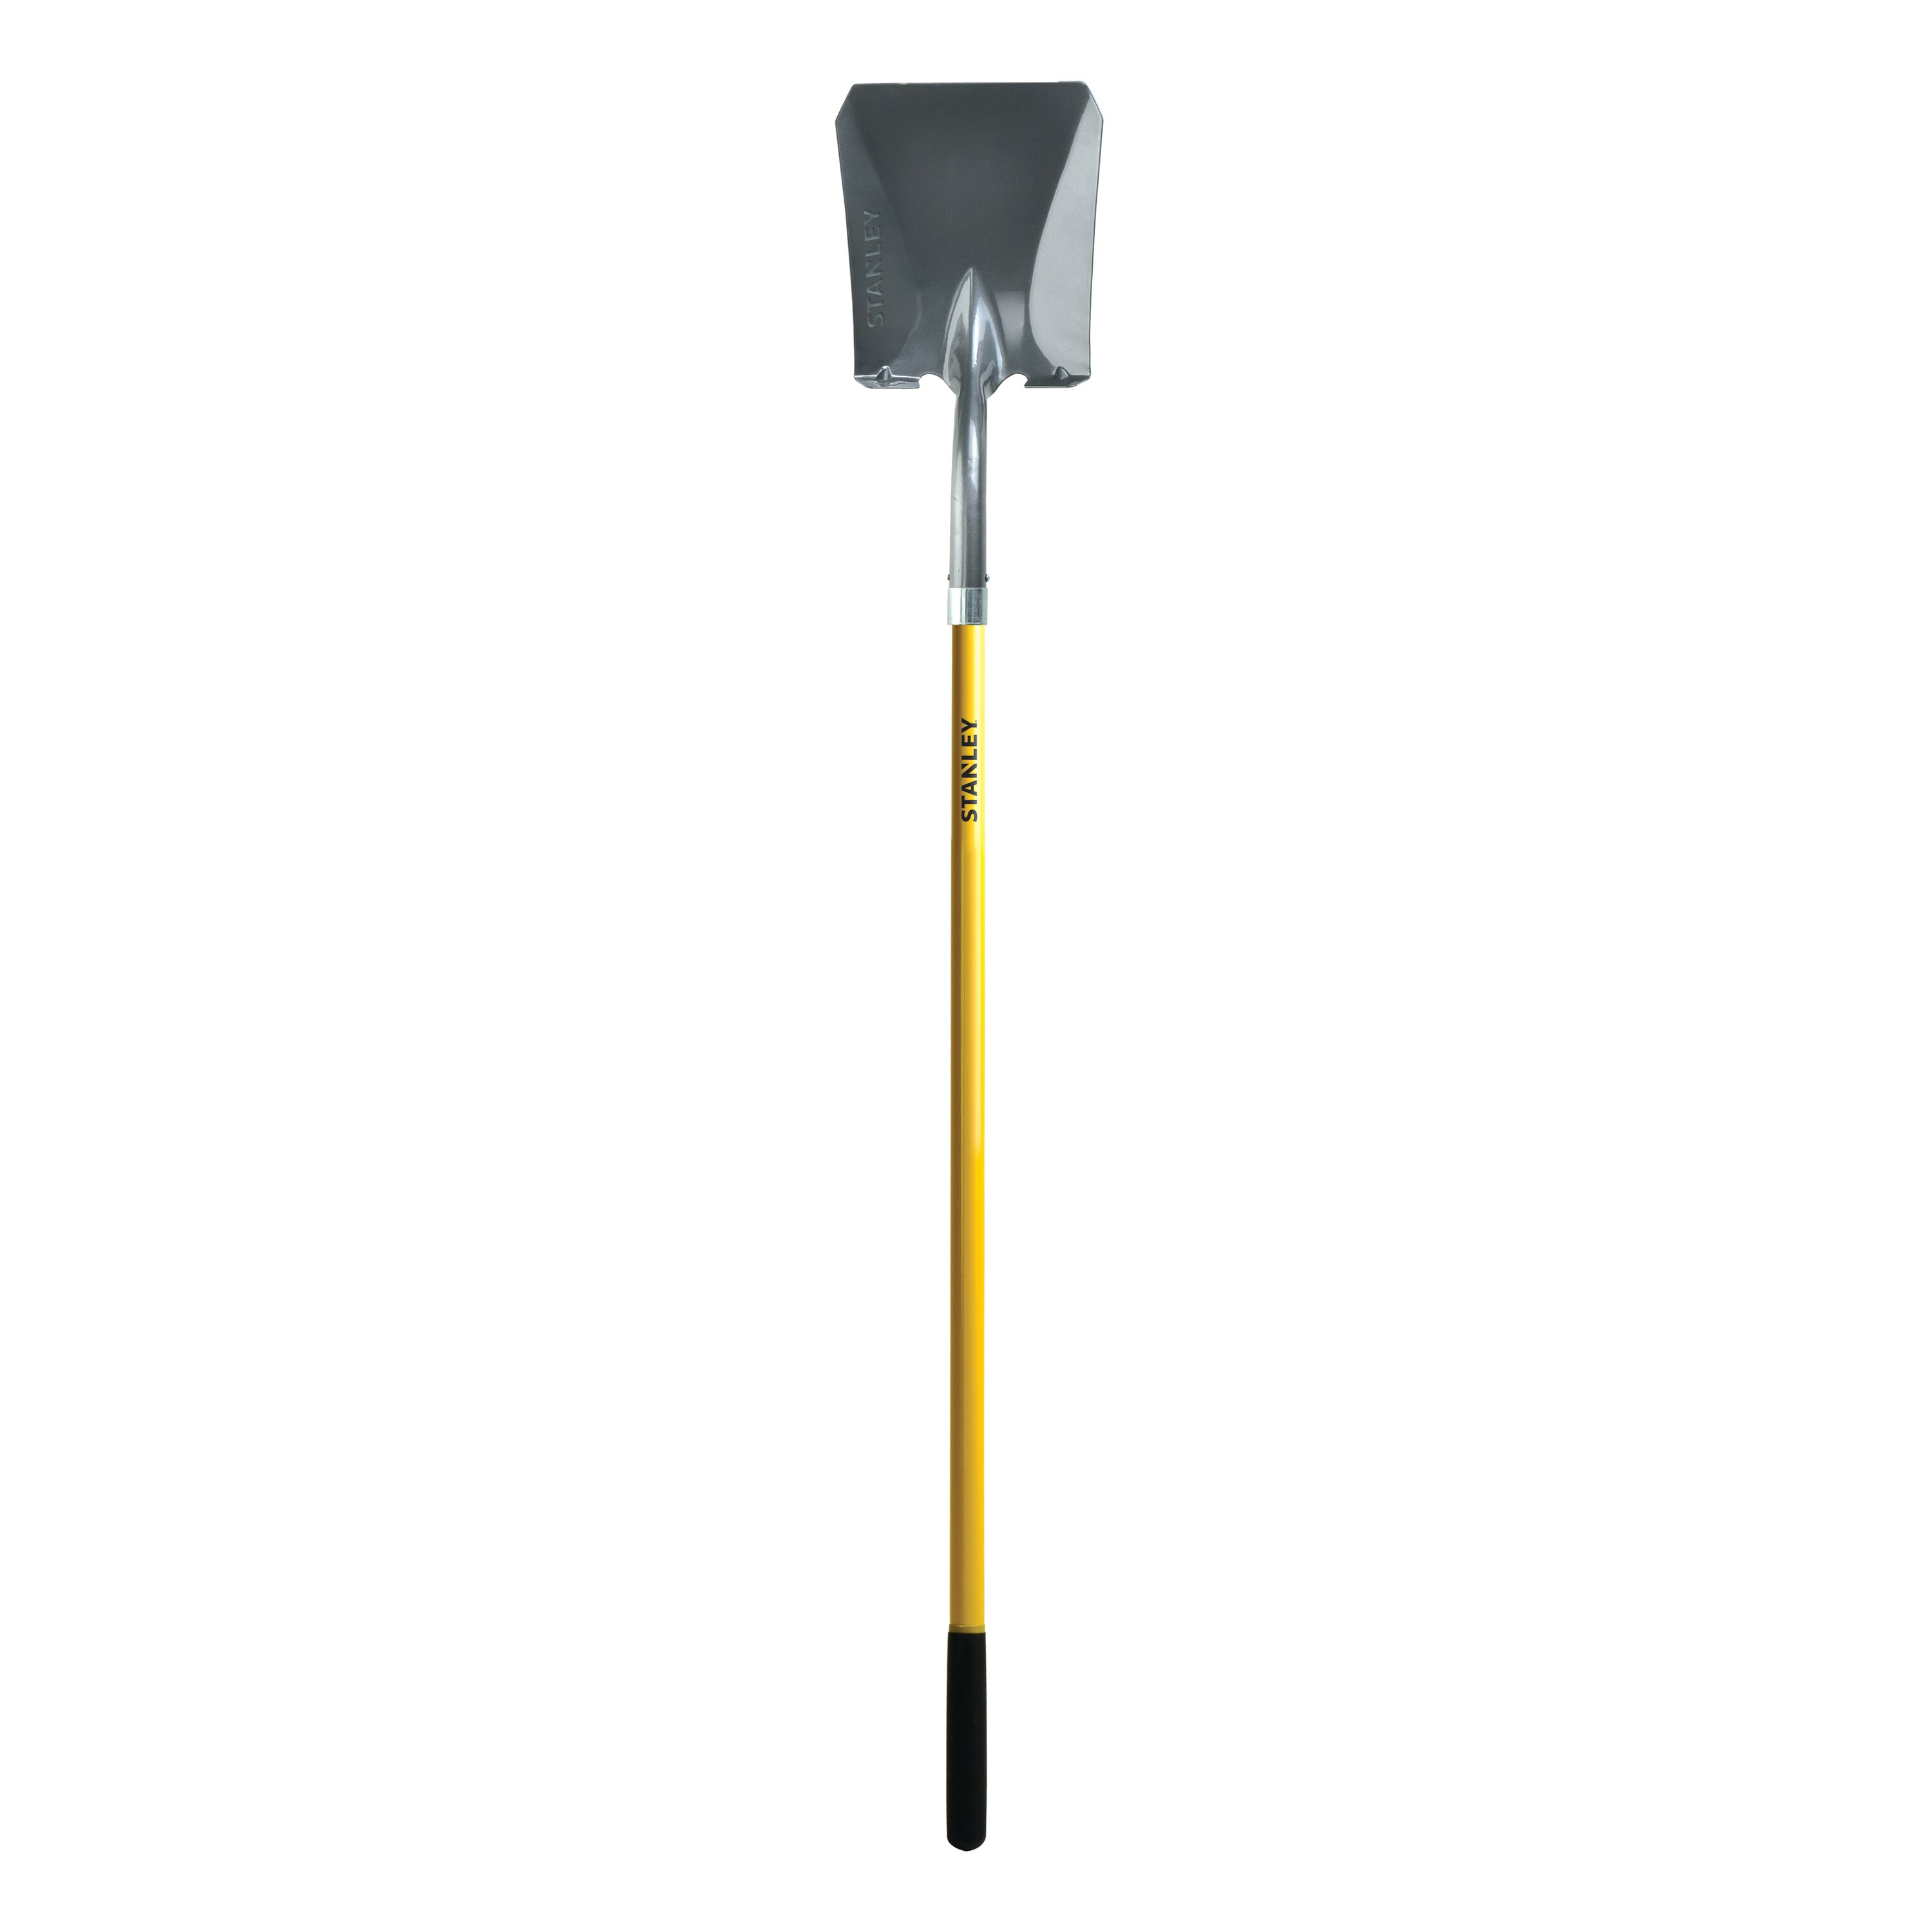 Stanley Tools - ACCUSCAPE PROSERIES CONTRACTOR GRADE SQUARE HEAD SHOVEL - BDS6459